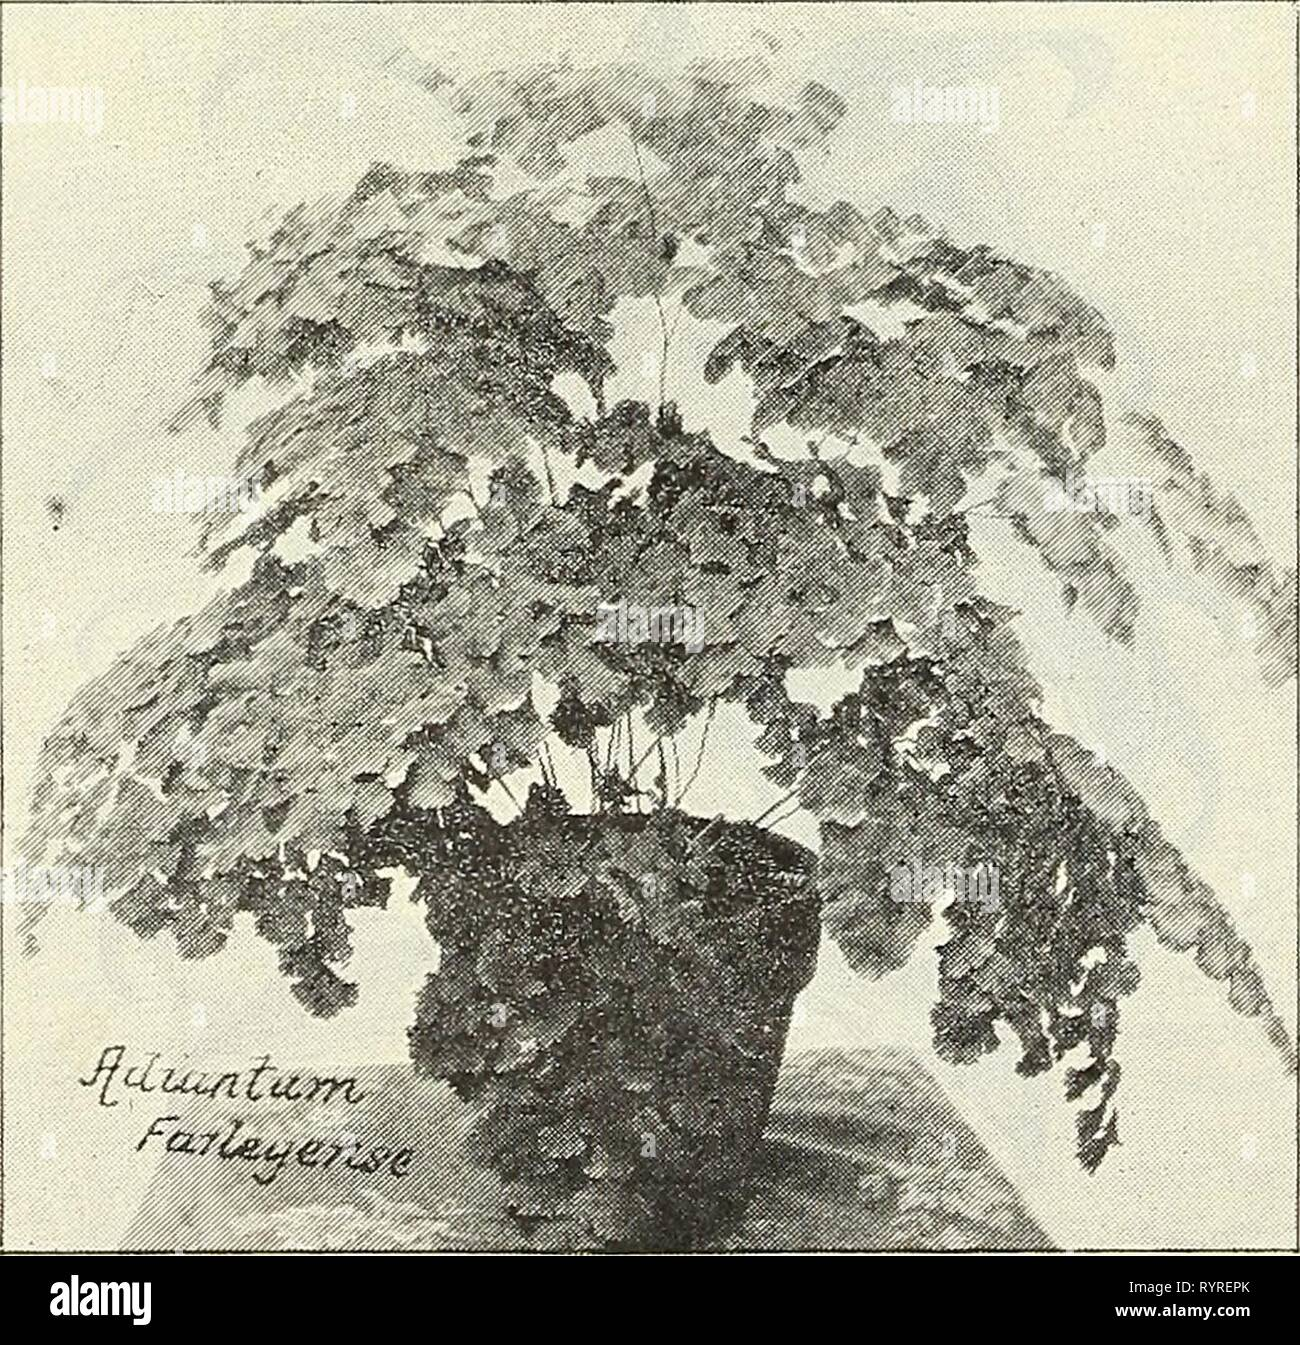 Dreer's wholesale price list  Dreer's wholesale price list : bulbs plants flower seeds, vegetable seeds, grass seeds, fertilizers, insecticides, tools, etc . dreerswholesalep1903henr Year: 1903  DREER'S FINE FERNS. VARIETIES OF SPECIAL MERIT. Adiantum Bensoniana. A most beautiful Maiden-hair, with large fronds and deep green pinnse, which, while closely overlapping, is not so dense as to make the frond appear crowded. It makes a handsome specimen plant, and is a distinct addition to our long list of Adiantums. A fine lot of 3-inch pot plants $2.00 per dozen ; ^15.00 per 100. Adiantum Cnneatnzn - Stock Image